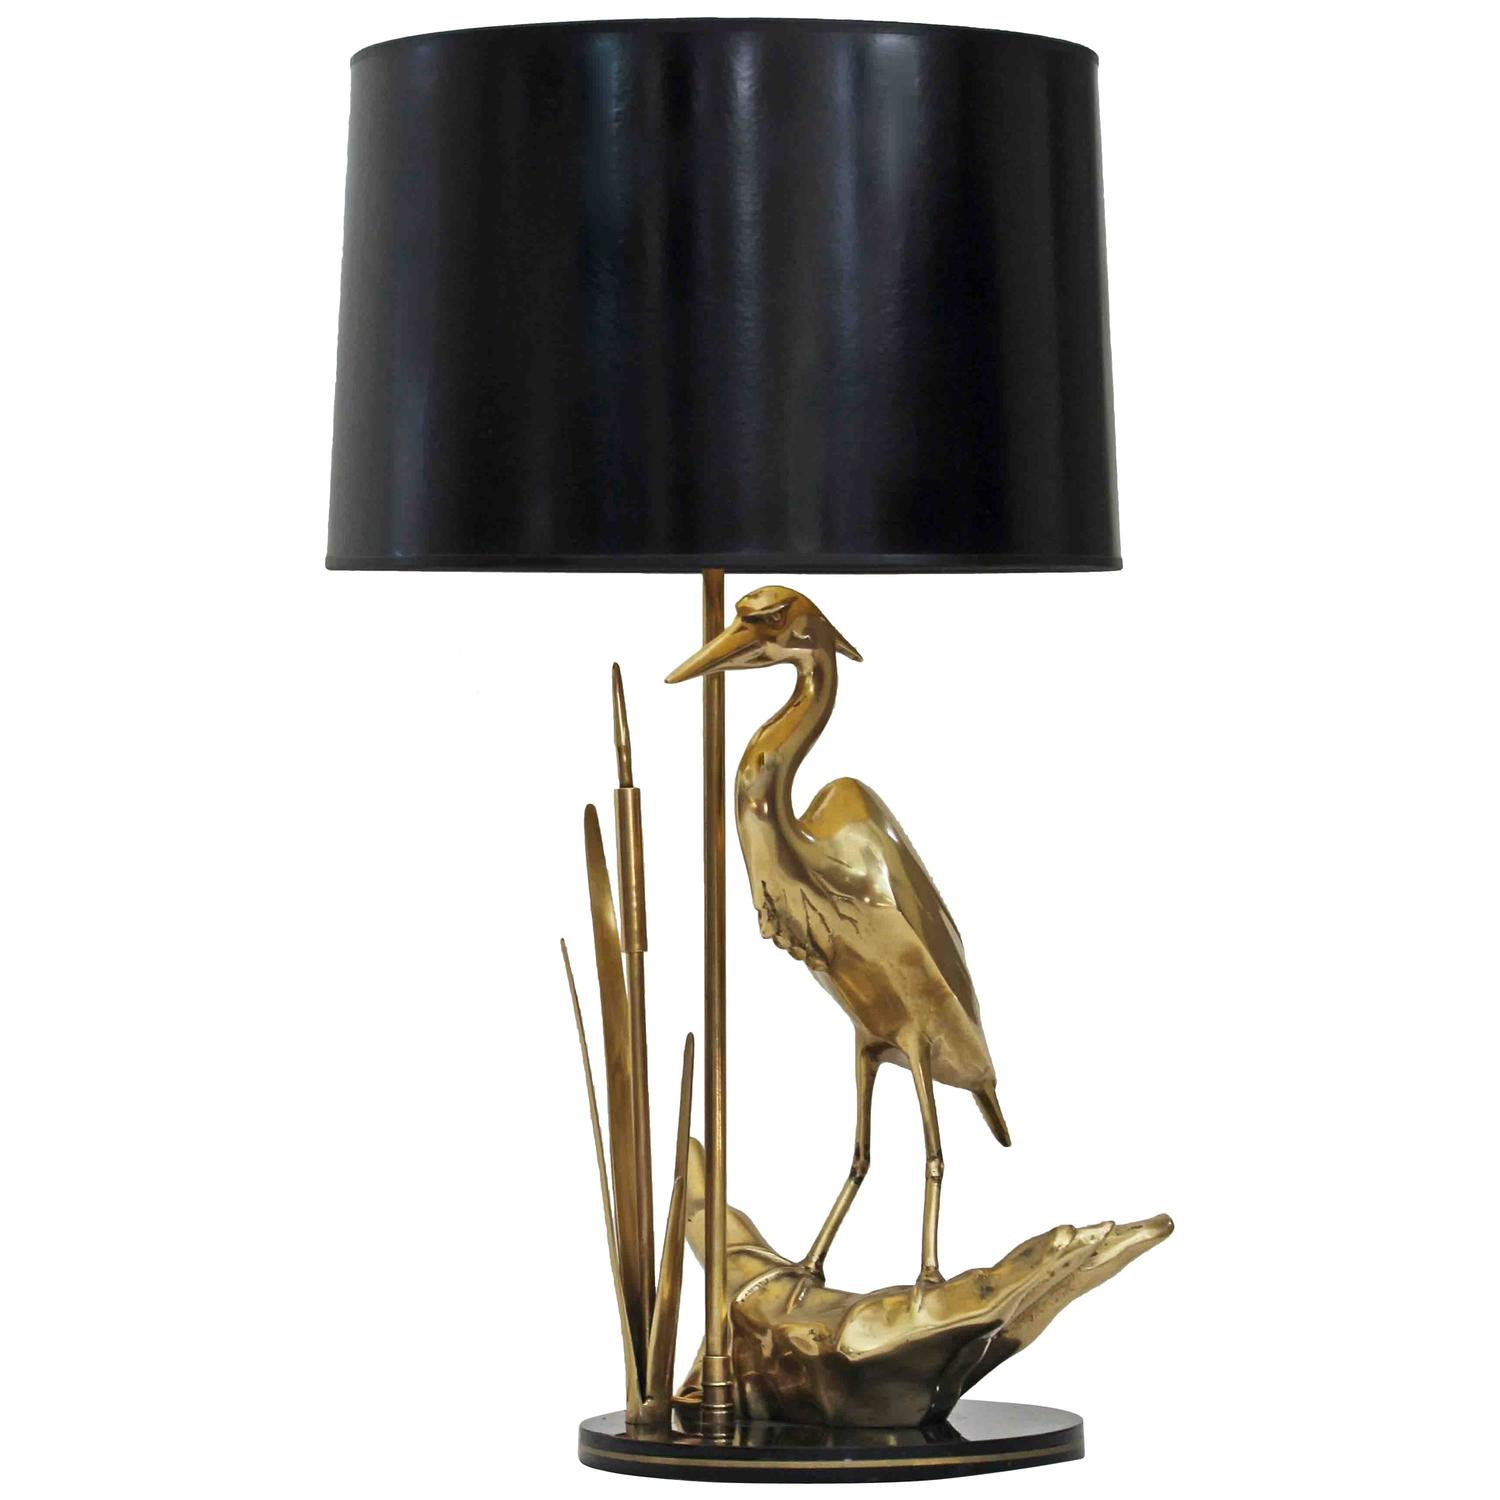 Gold bird table lamp best inspiration for table lamp brass heron bird table lamp for sale at 1stdibs mozeypictures Choice Image